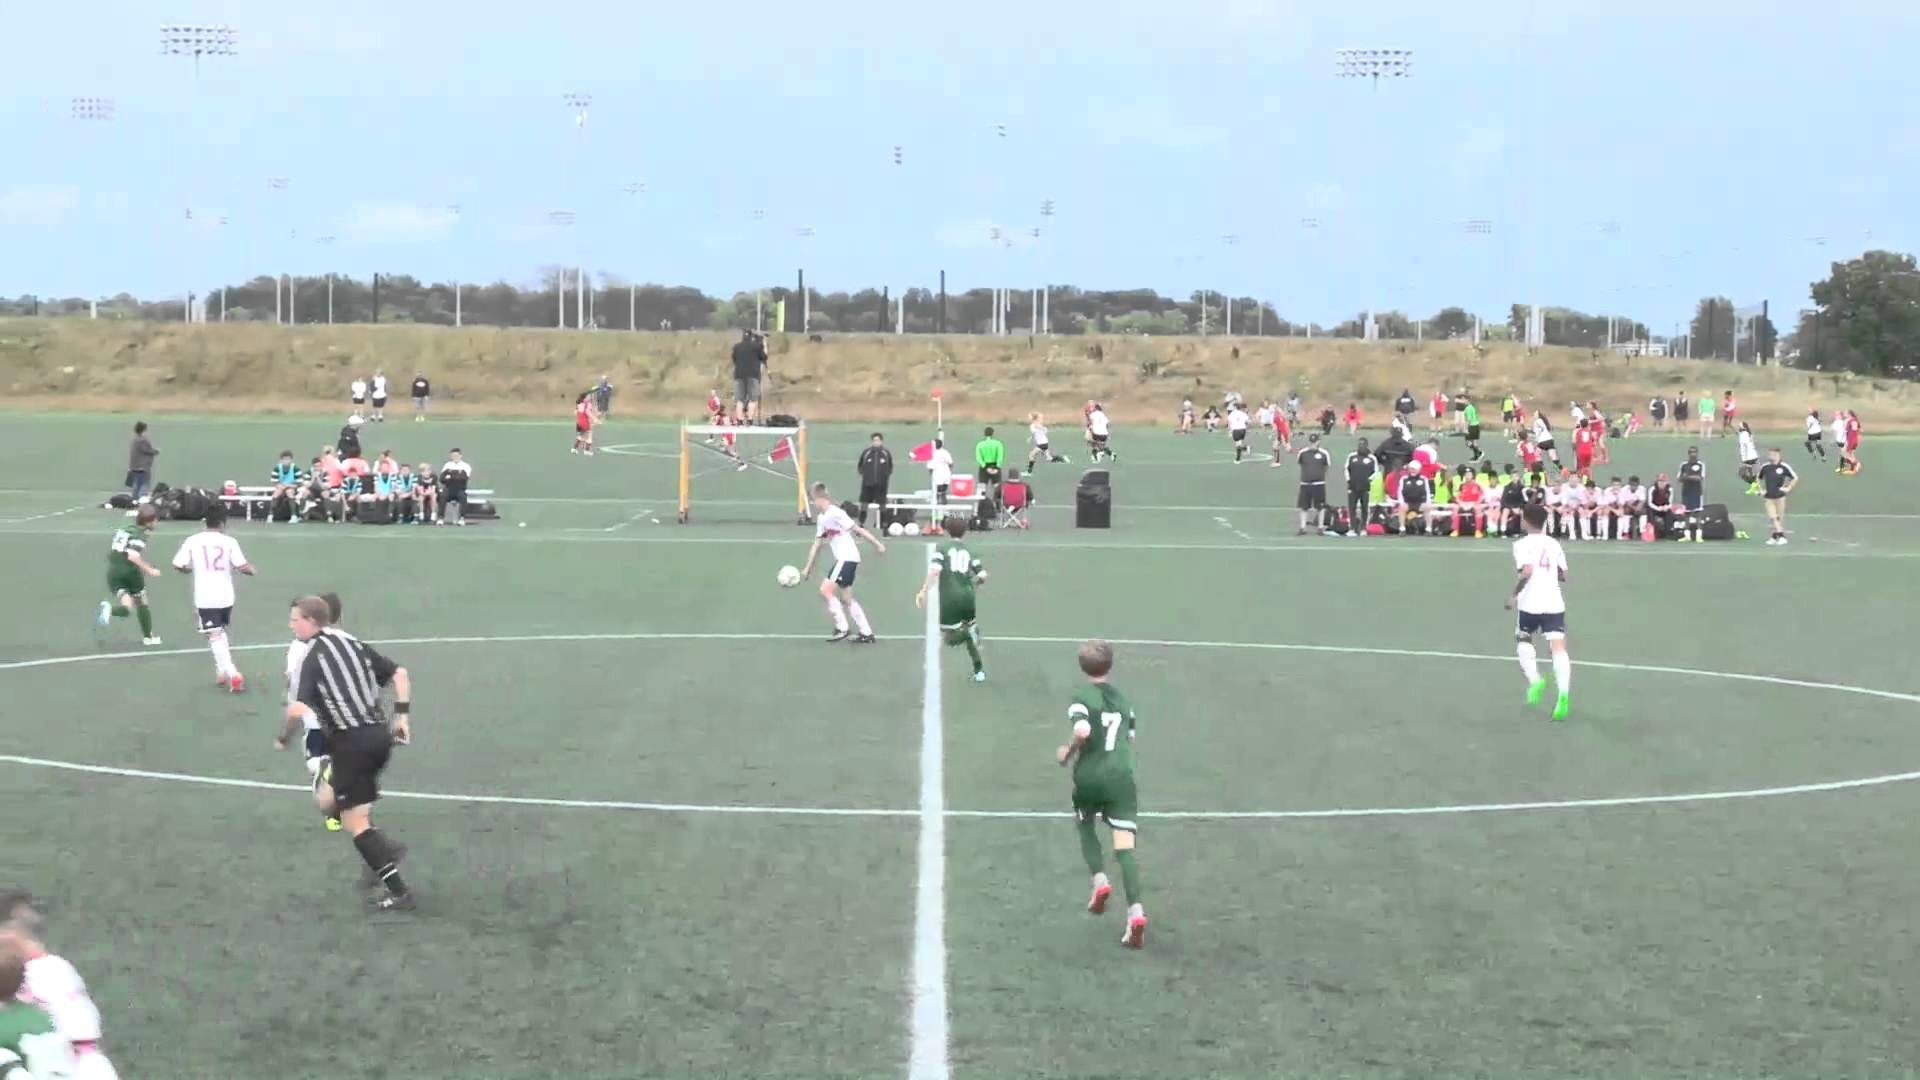 1920x1080 U-13 boys championship: New York Red Bulls vs. St. Louis Scott Gallagher –  2015 NPL Finals